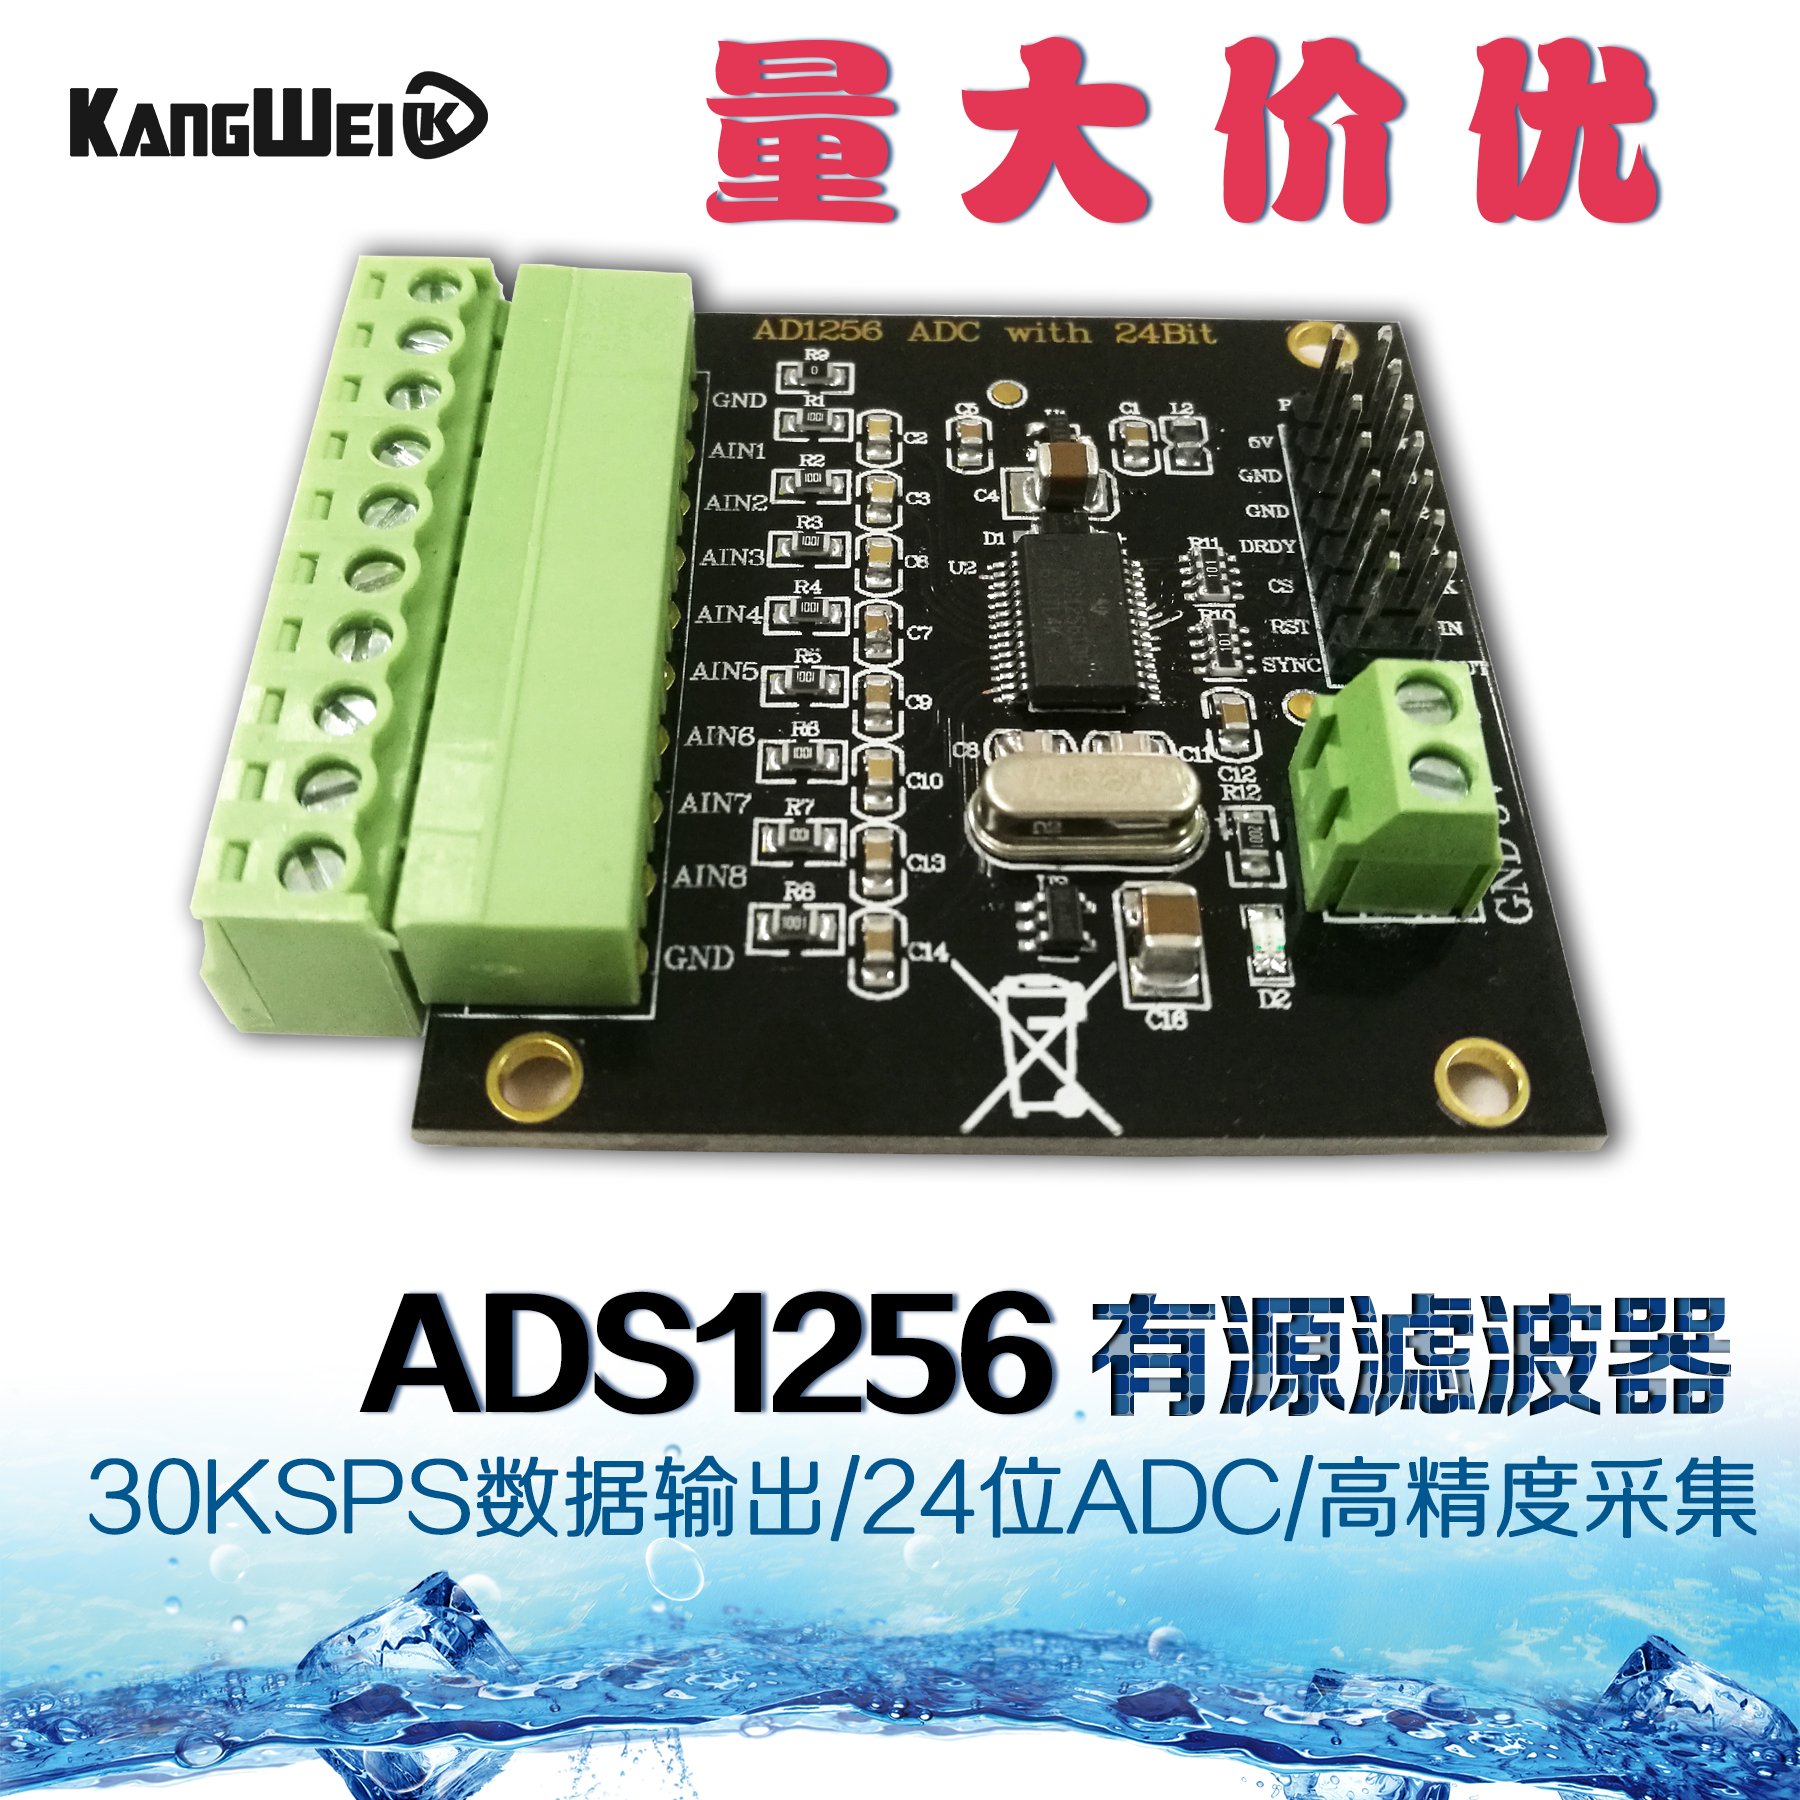 ADS1256 24 Bit ADC AD Module High Precision ADC Acquisition Data Acquisition Card ADC 100pcs lot new stm8s003f3p6 8s003f3p6 tssop 20 16 mhz 8 bit mcu 8 kbytes flash 128 bytes data eeprom 10 bit adc ic